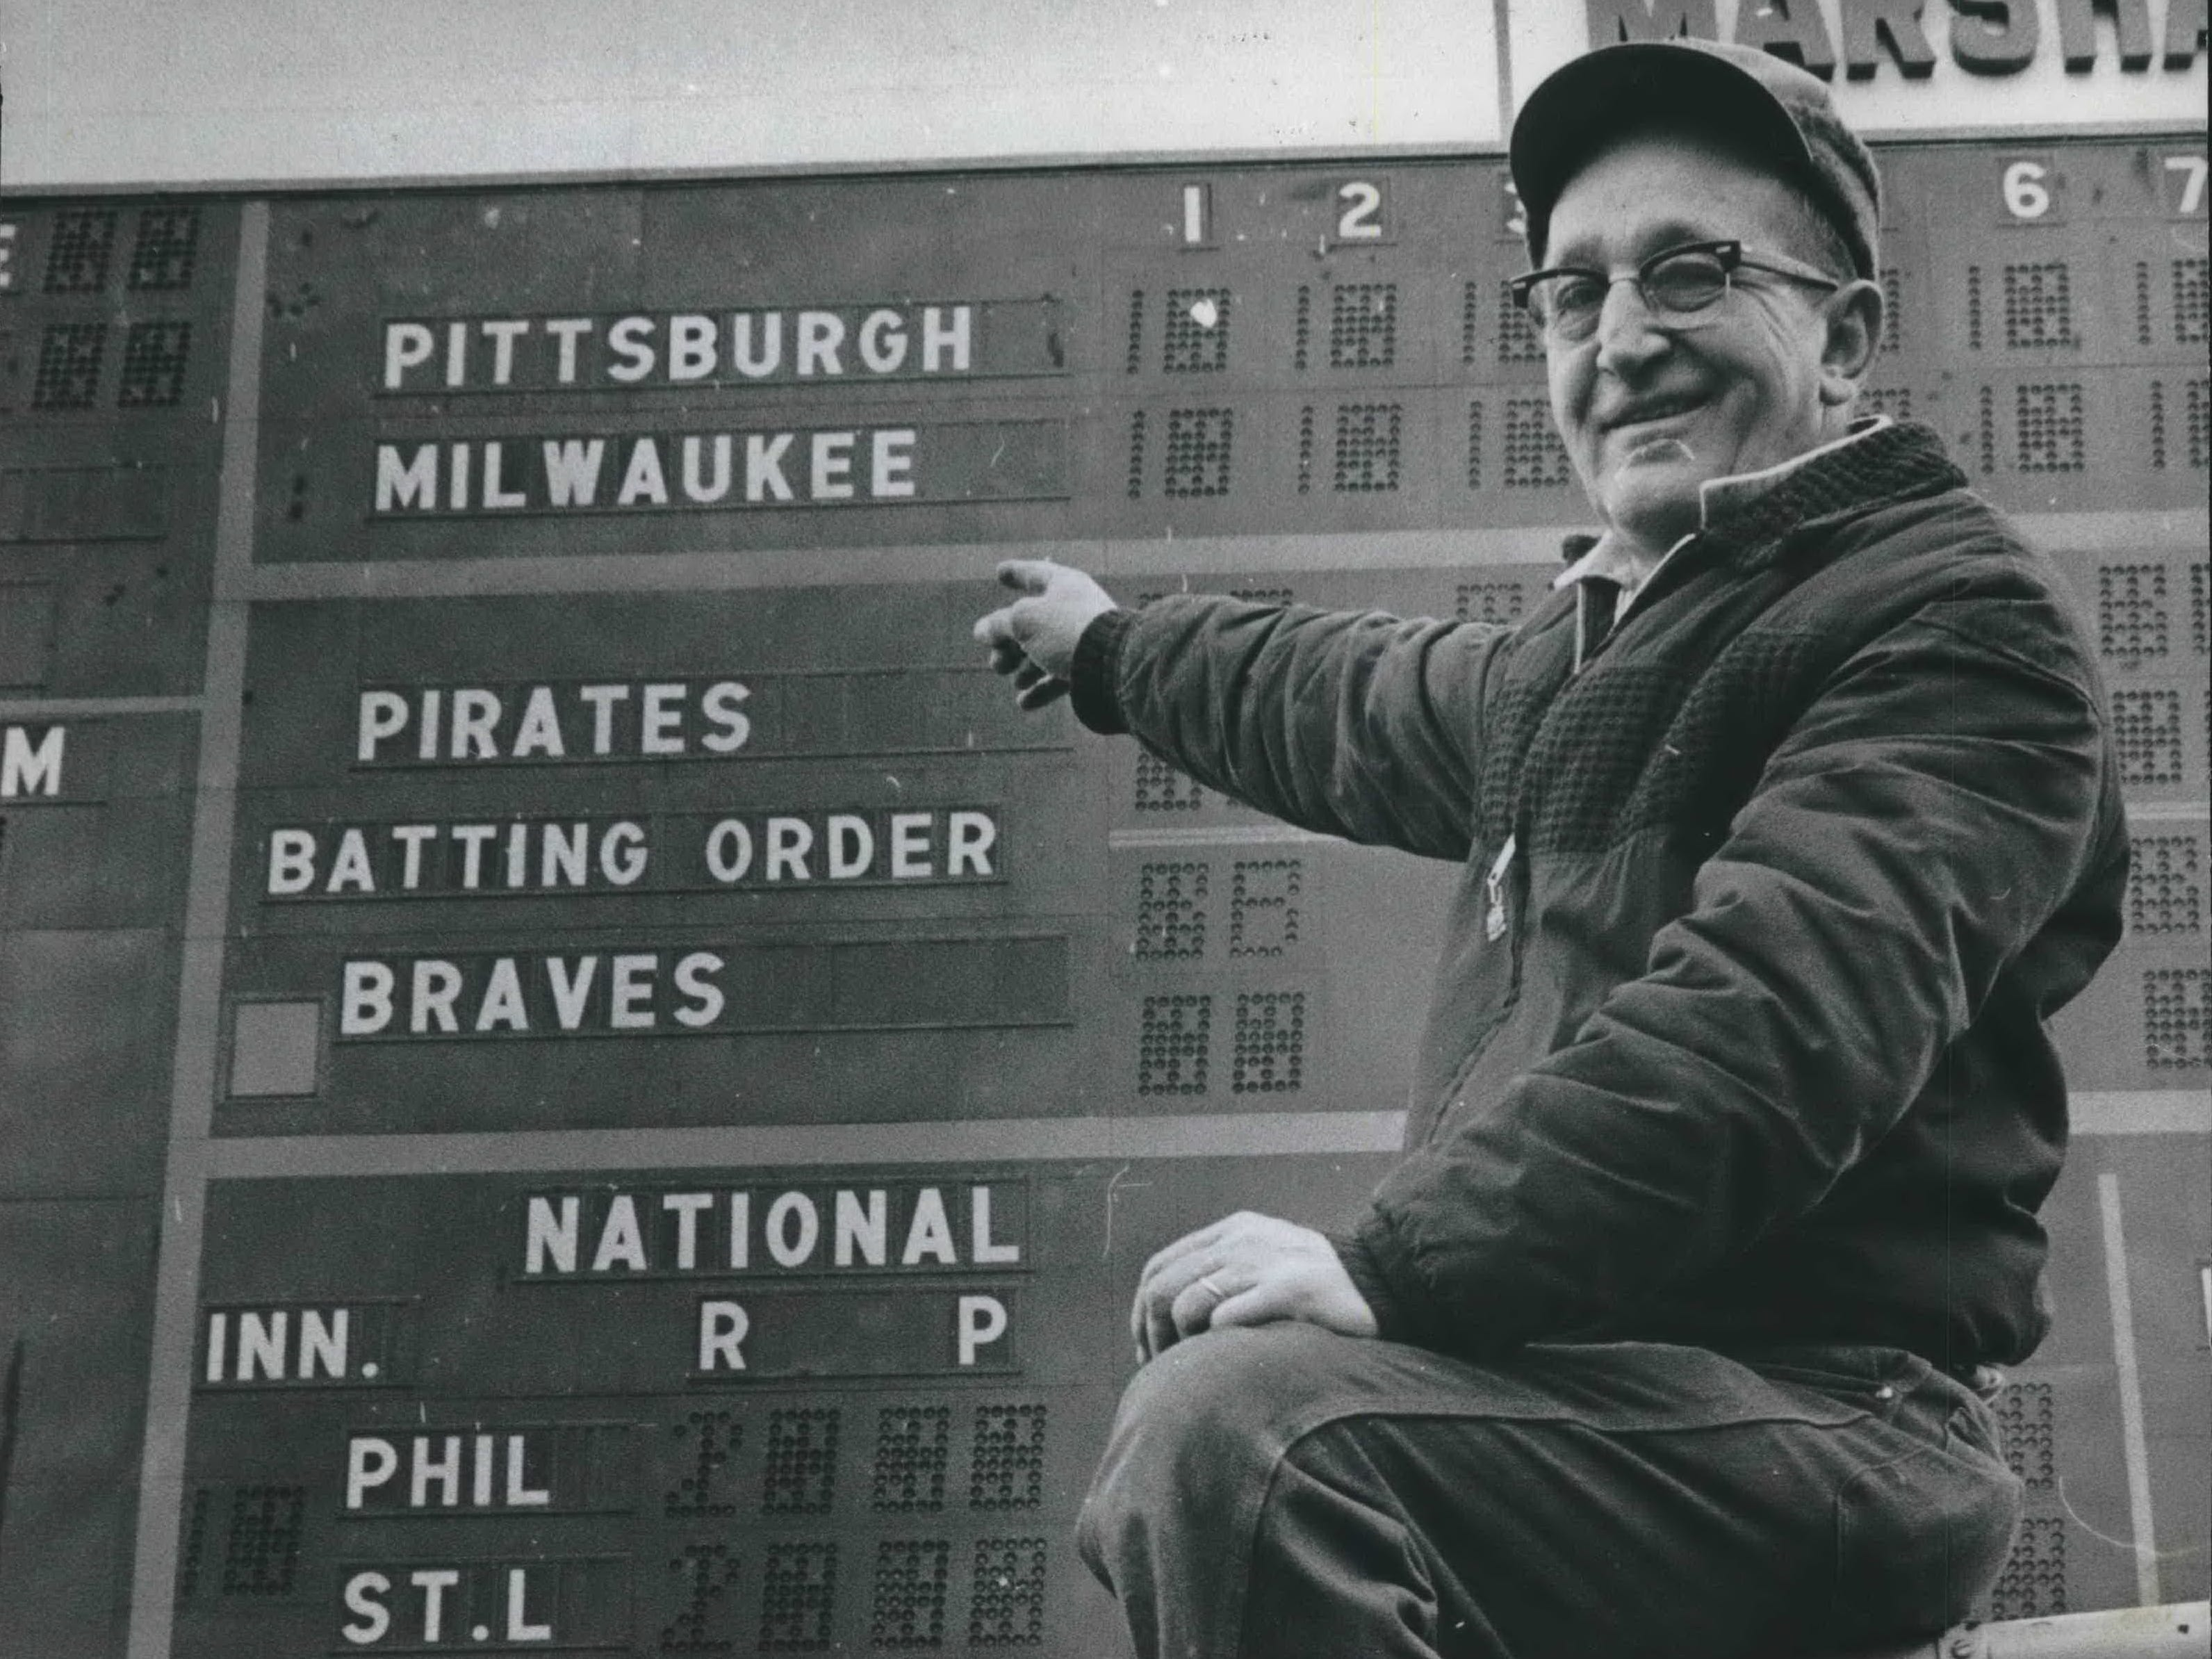 Everything is in readiness at County Stadium for opening day of the 1966 baseball season - provided, that is, a court can force the Braves to return to Milwaukee. Pointing to the scoreboard, which shows Pittsburgh at Milwaukee, is Edward Tuchalaski, a County Park Commission employee. (Spoiler alert: It didn't happen; the Braves stayed in Atlanta, and Milwaukee got the Brewers in 1970.) This photo was published in the April 3, 1966, Milwaukee Sentinel.